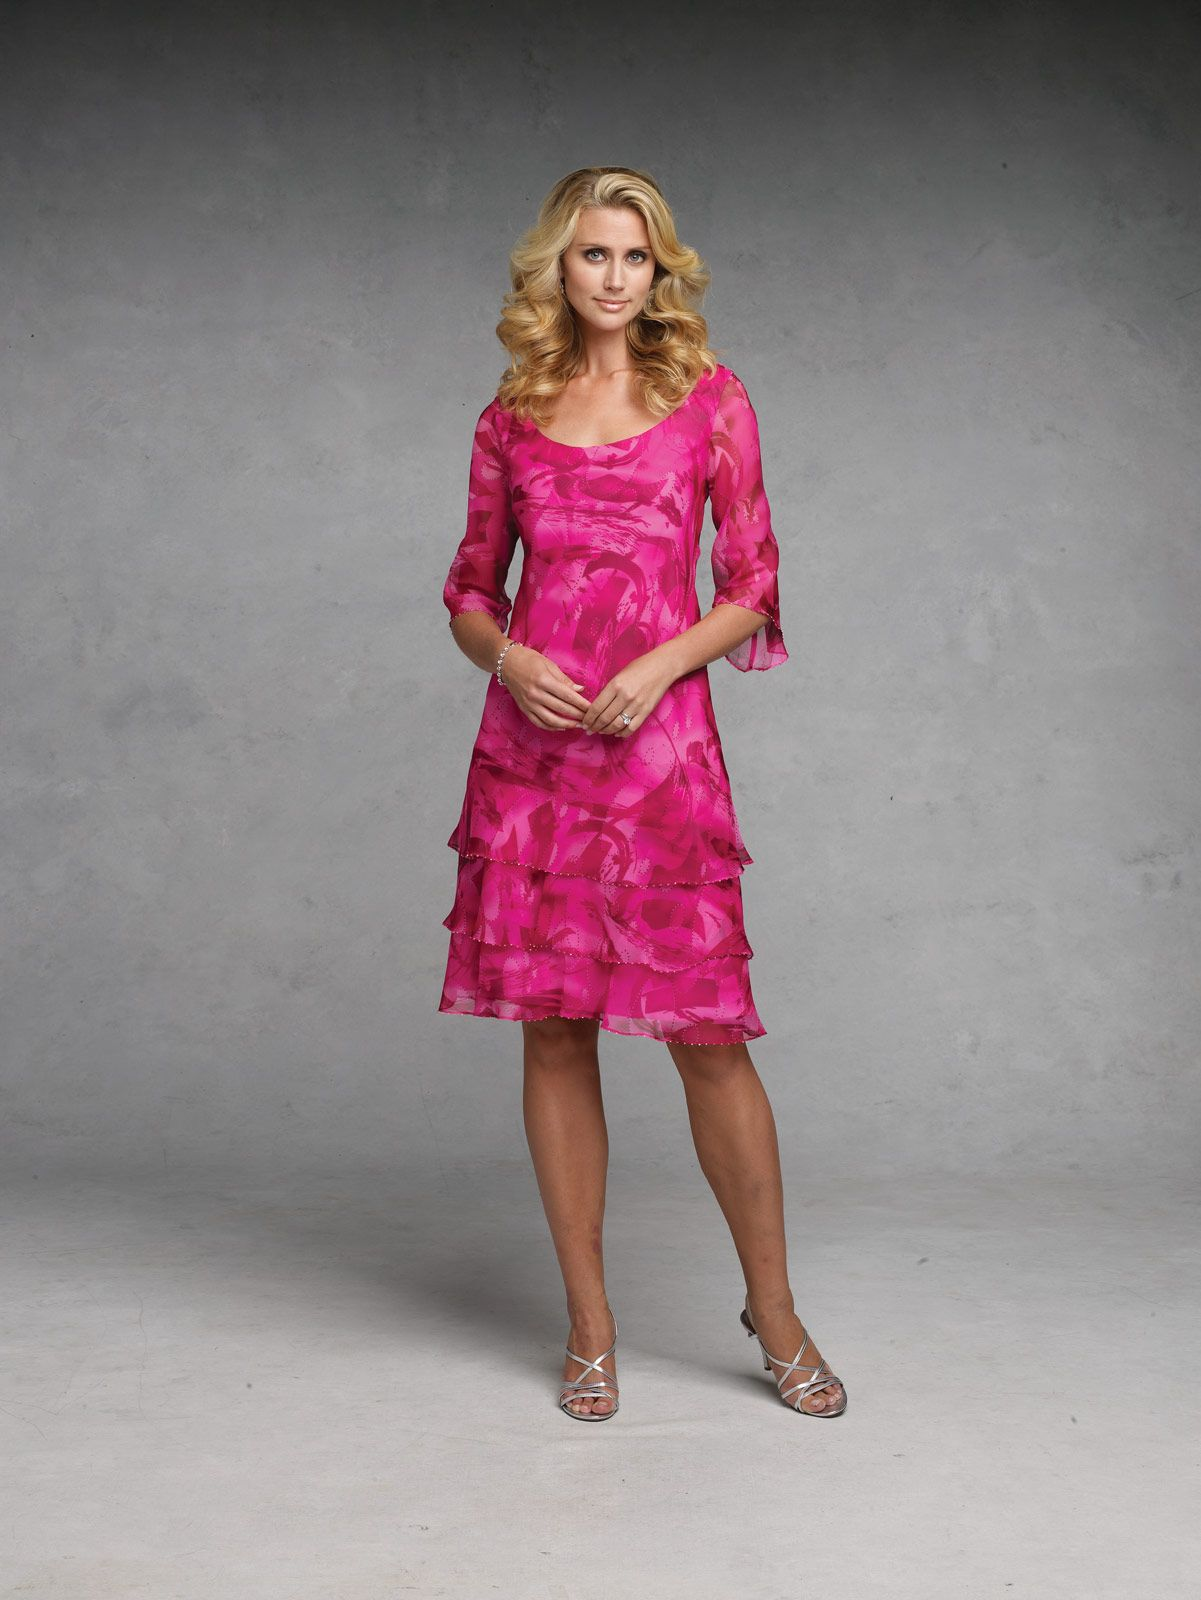 Mother of the bride beach dresses for weddings  getting ideas for October florida wedding  Dress Ideas